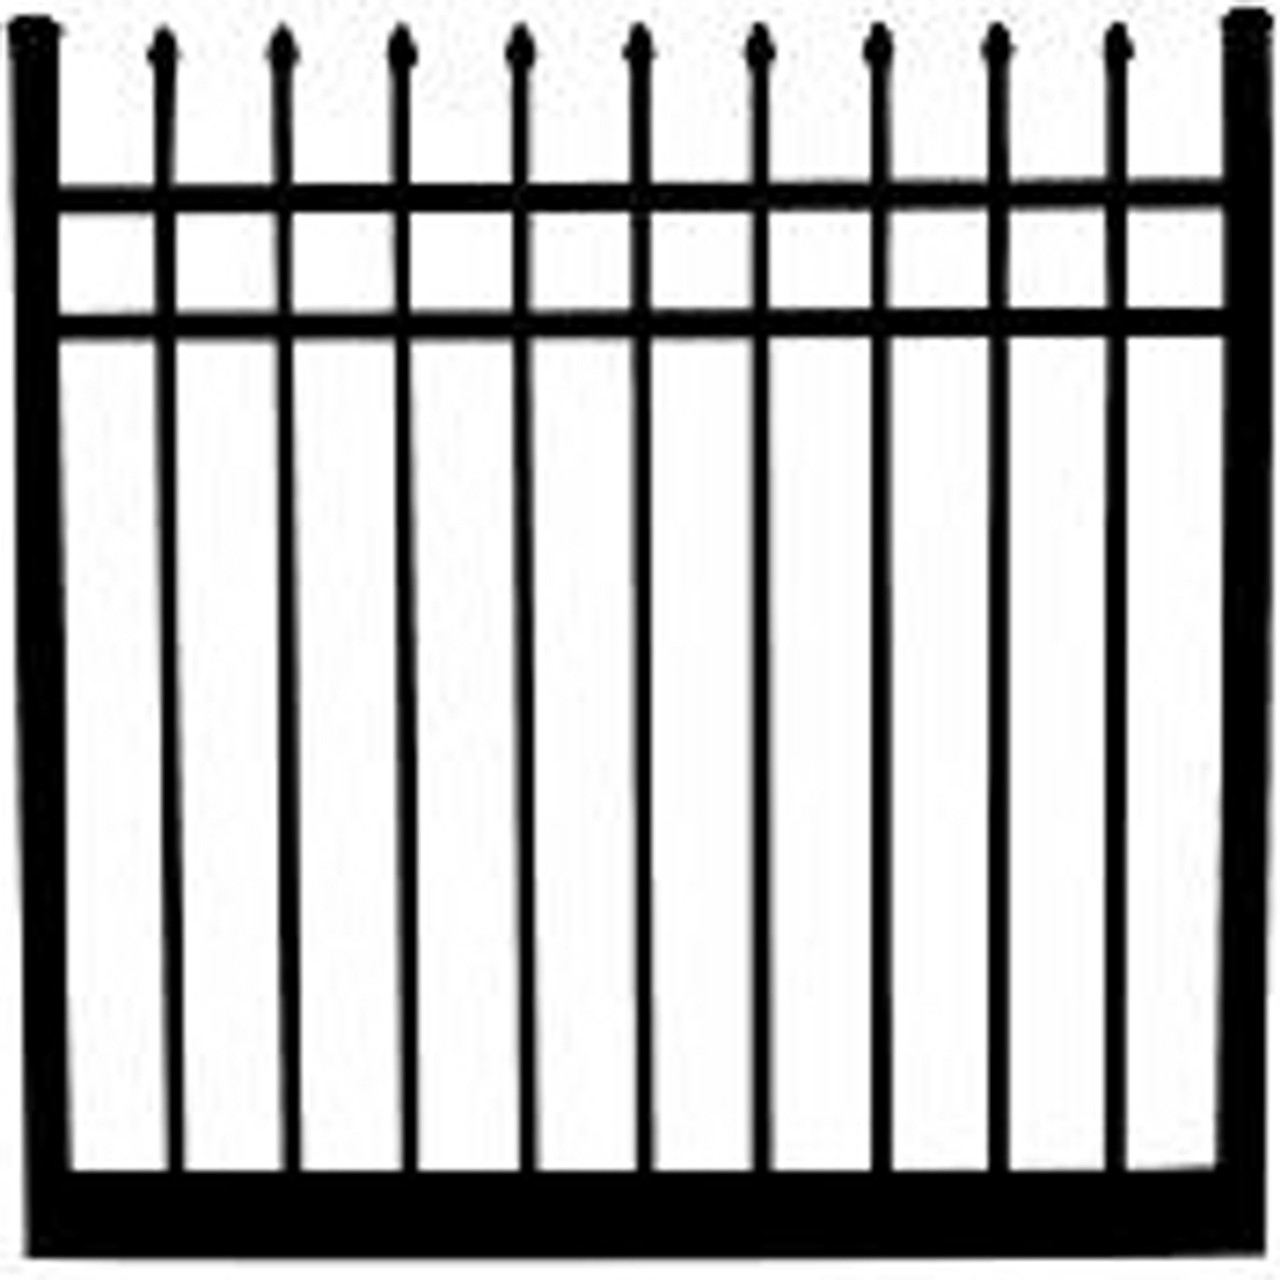 Regis 3131 Standard Fully Welded Gate with Spear Point Pickets